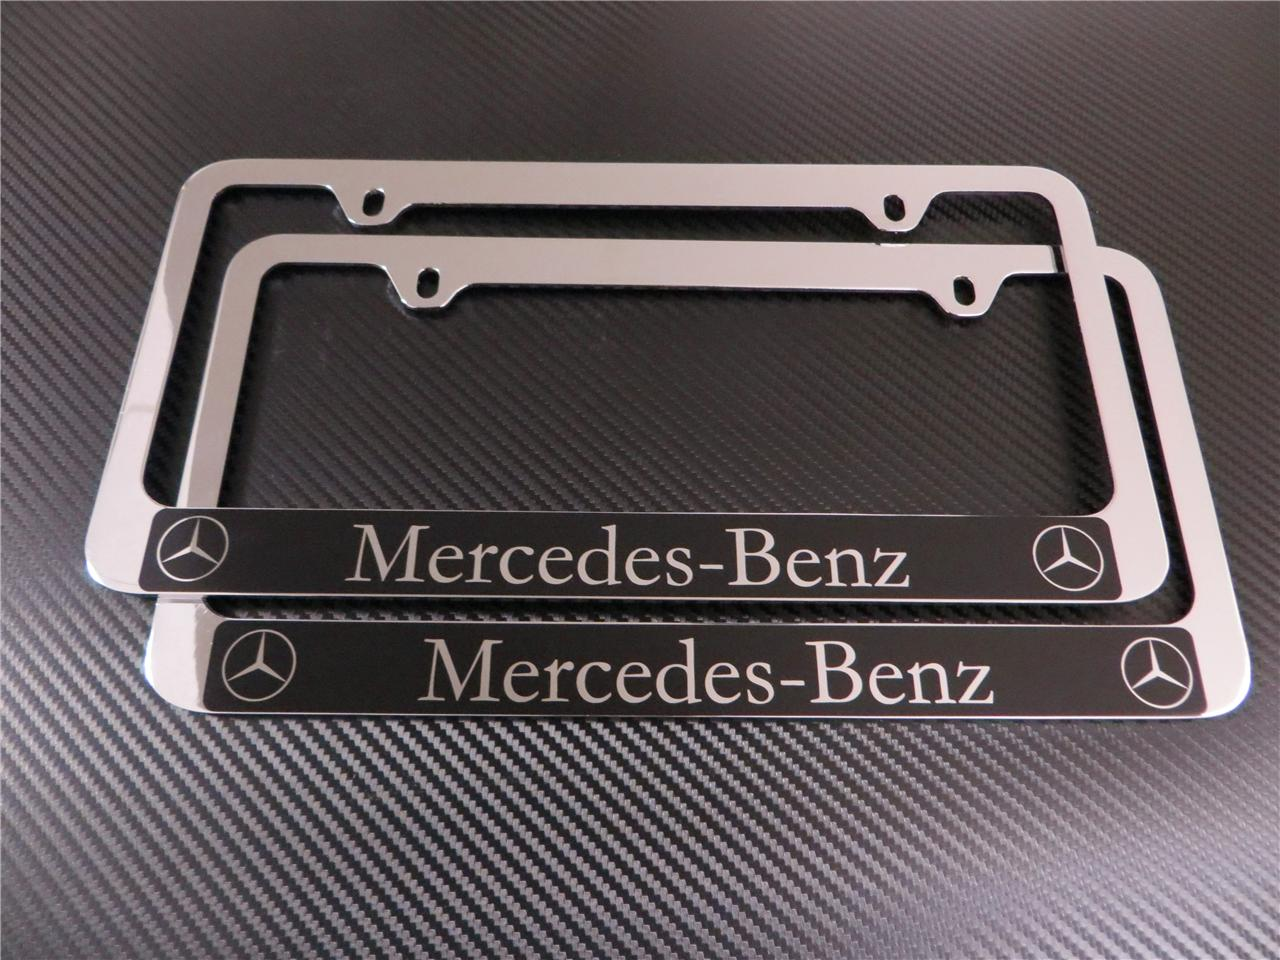 2pcs Mercedes Benz Halo E Class Chrome Metal License